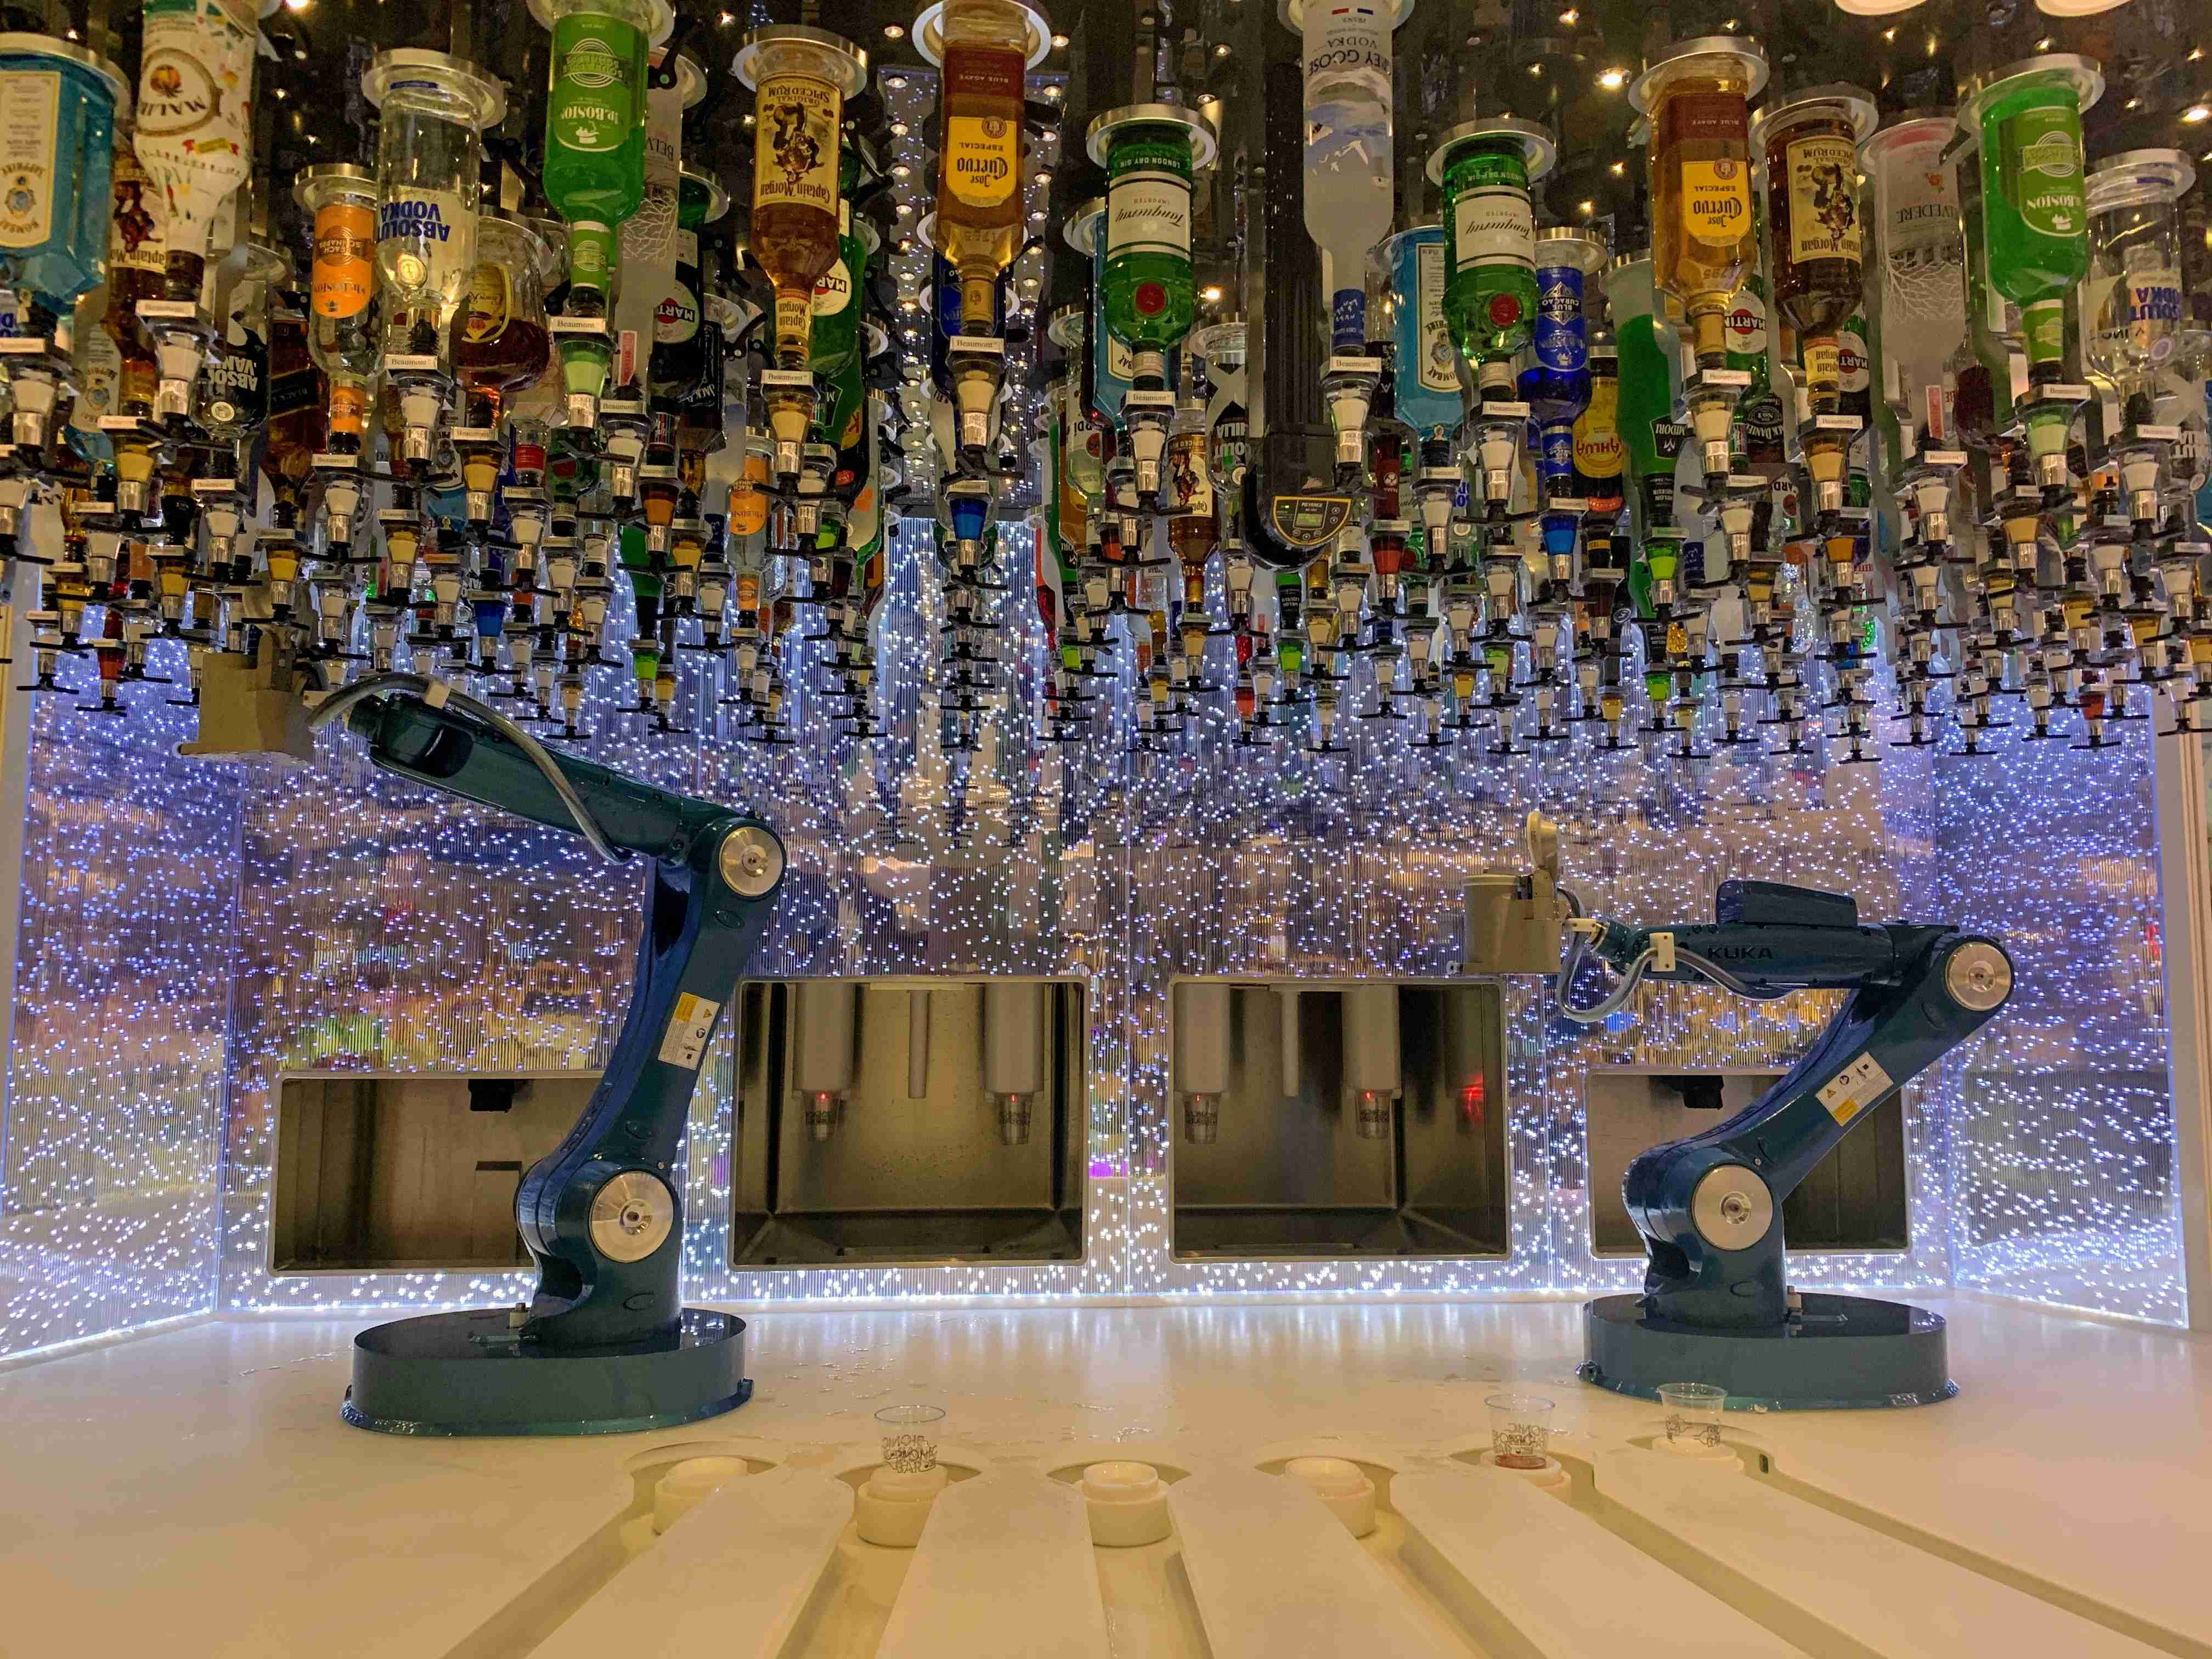 Royal Caribbean Symphony of the Seas - Bionic Bar